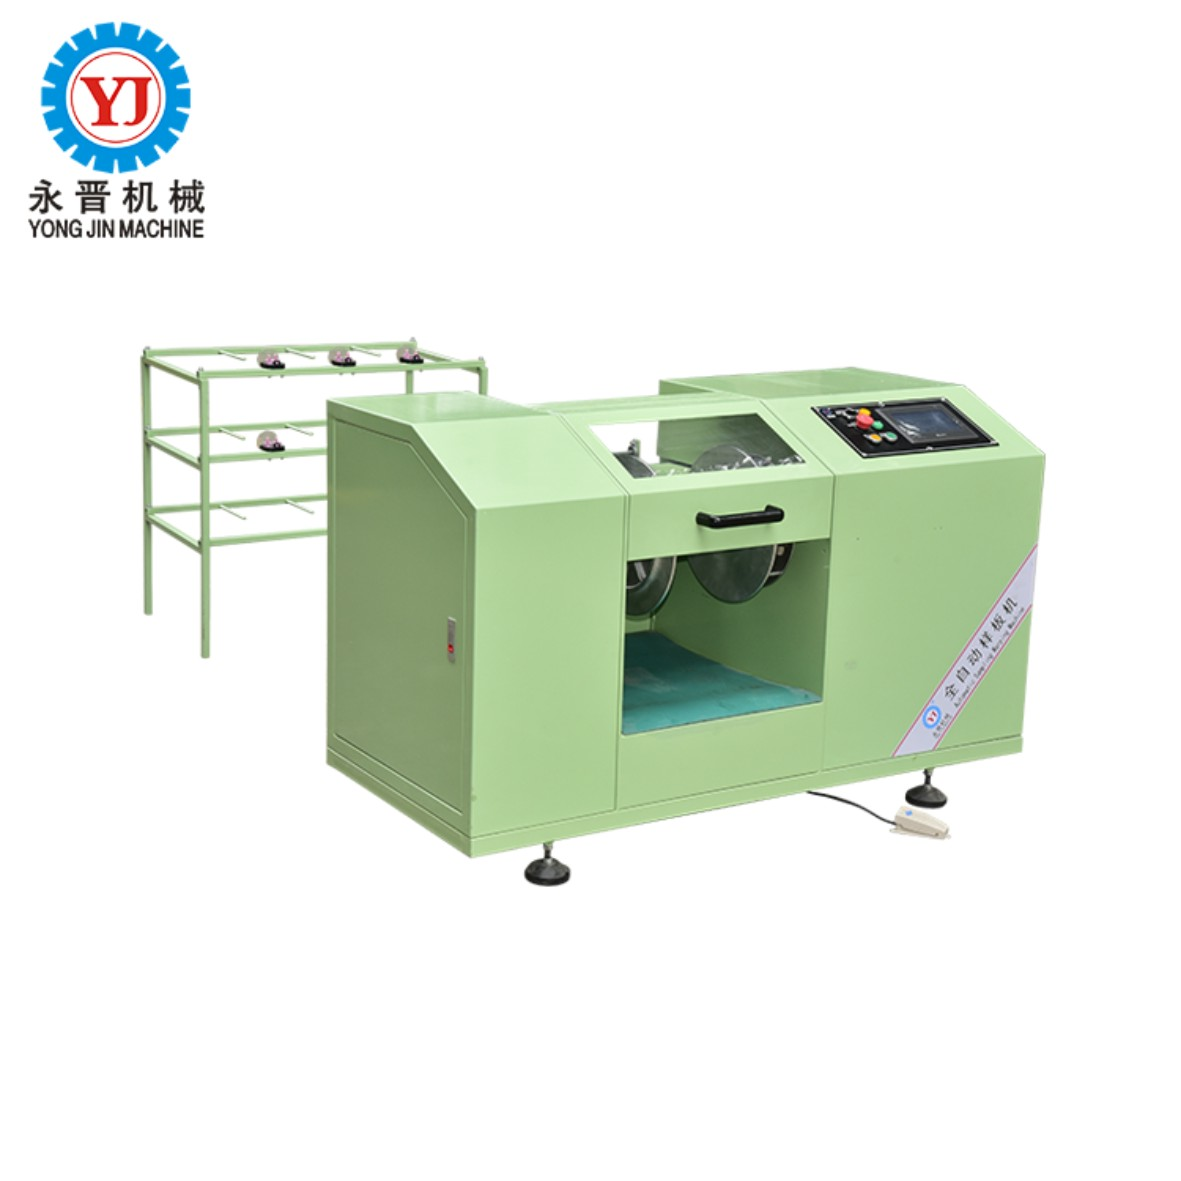 Automatic Sampling Warping Machine